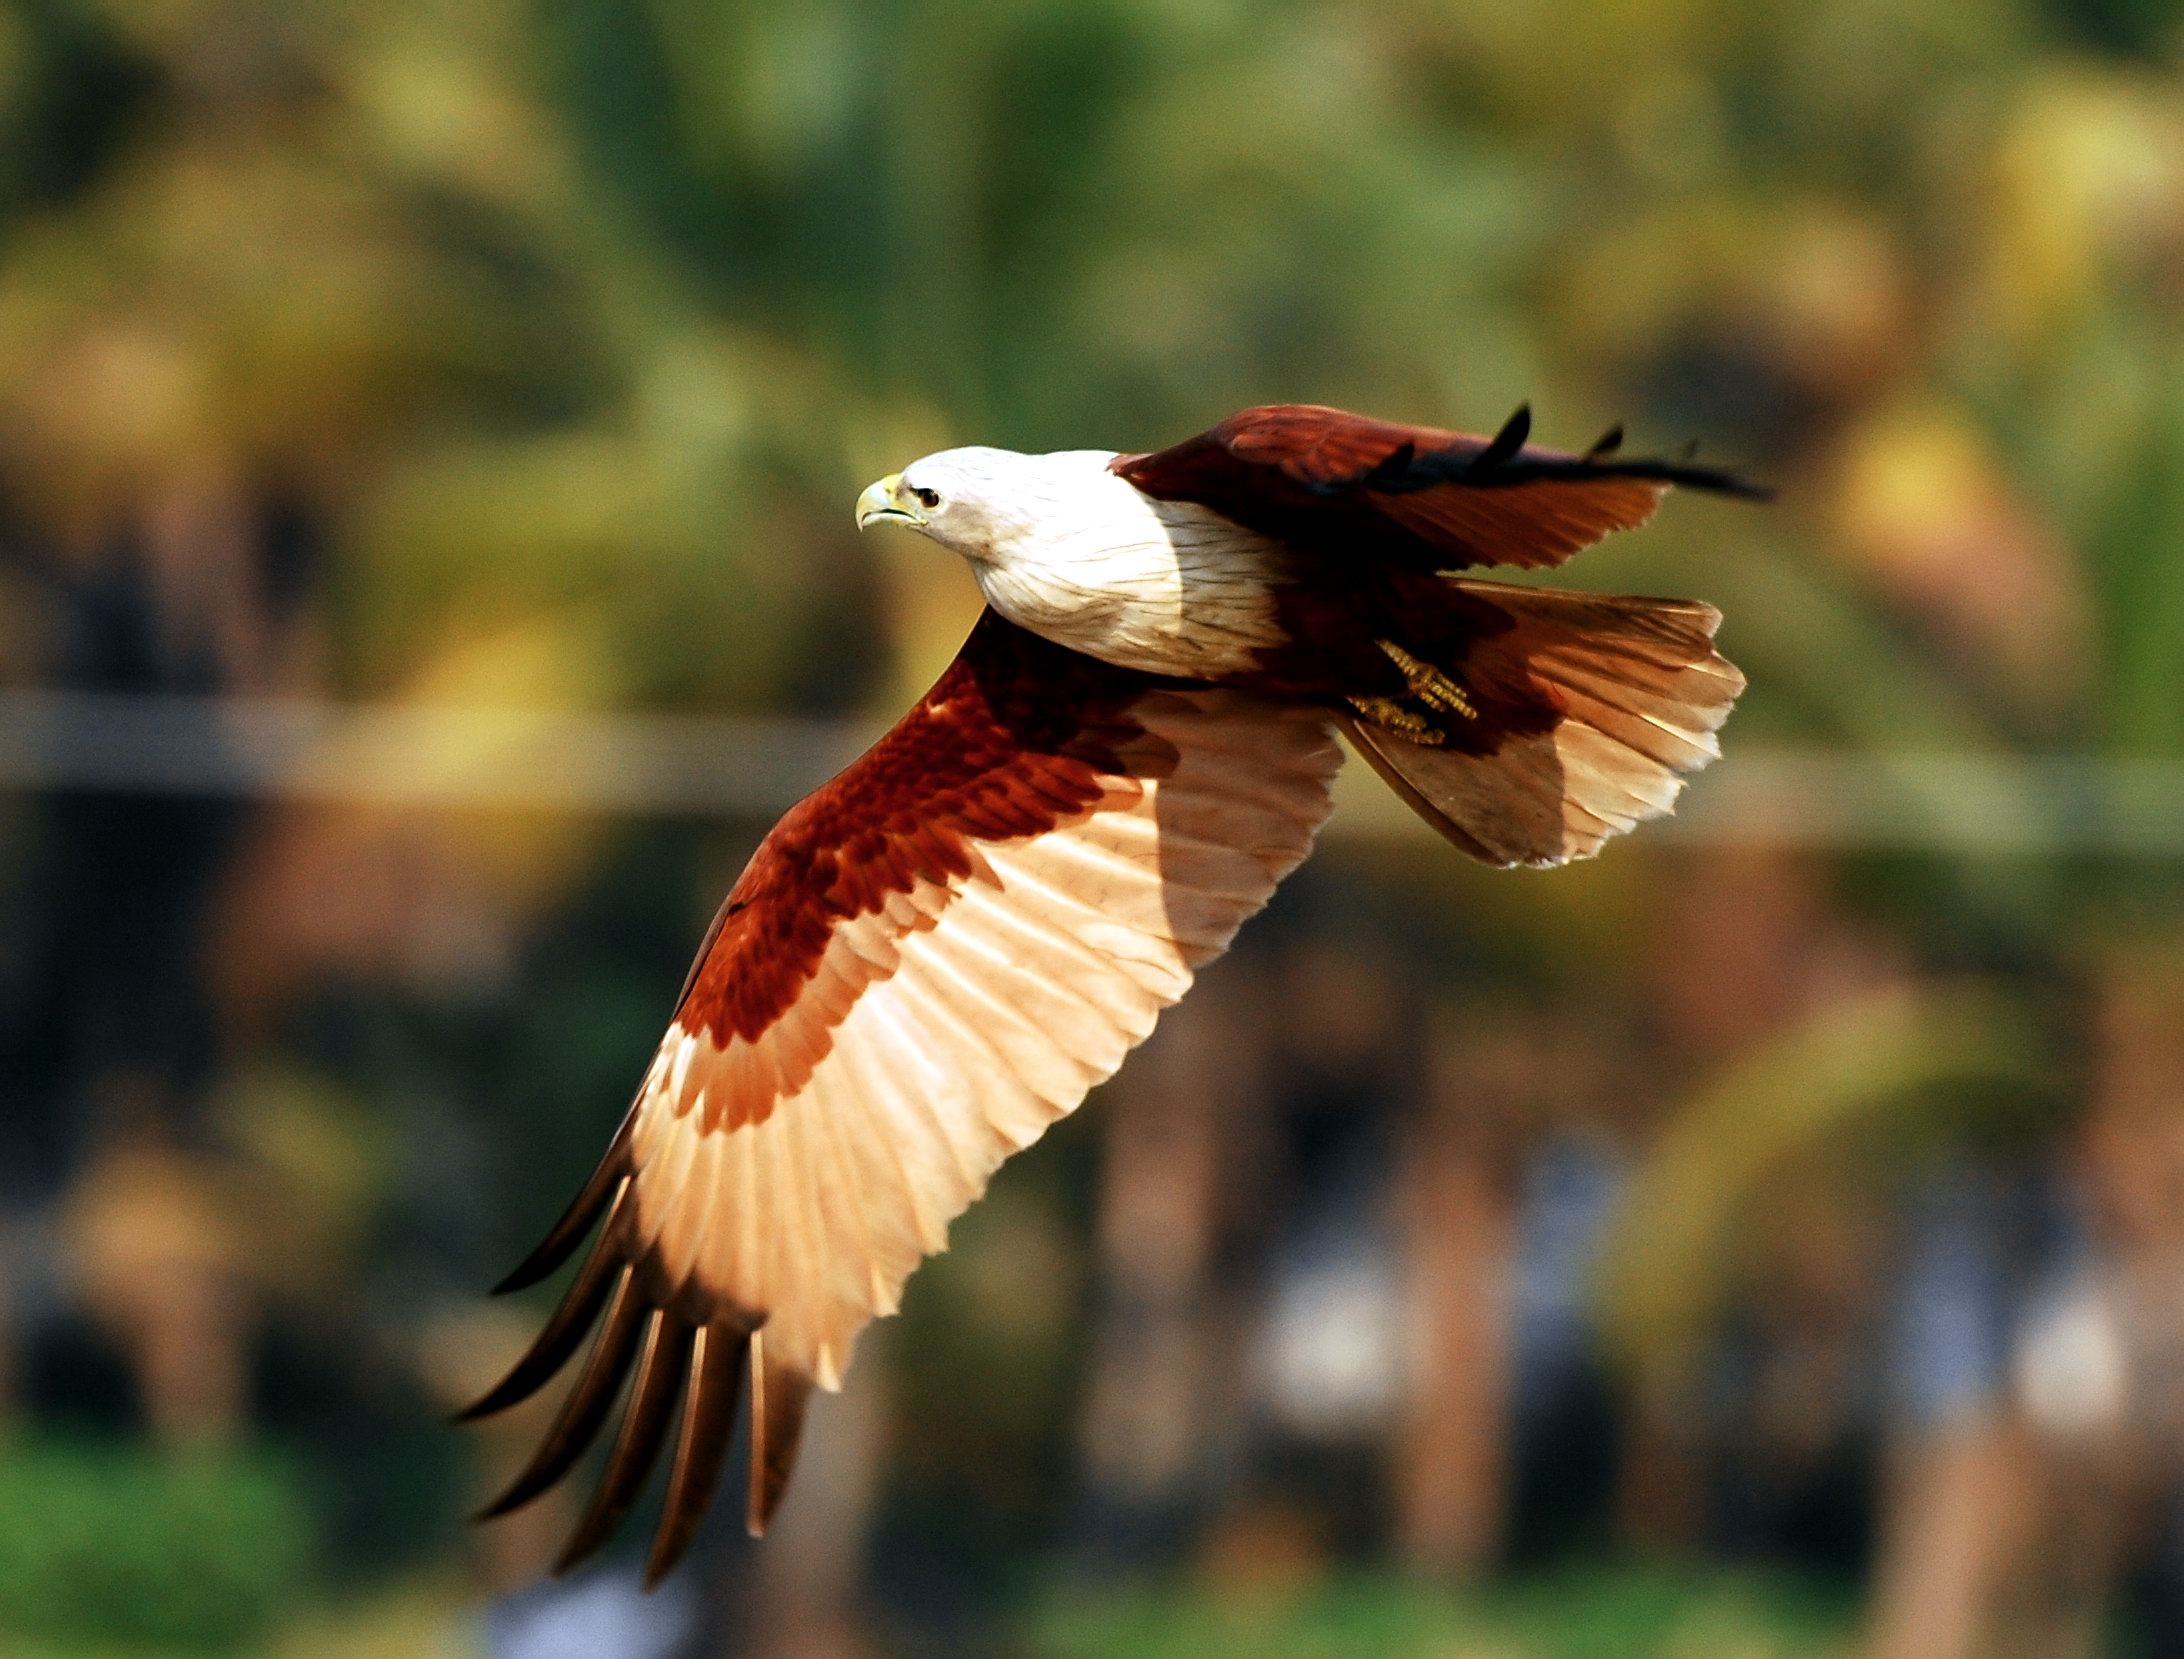 The brahminy kite (Haliastur indus) is identified with Garuda, the mythical mount of Vishnu. It hunts for fish and other prey near the coasts and around inland wetlands.